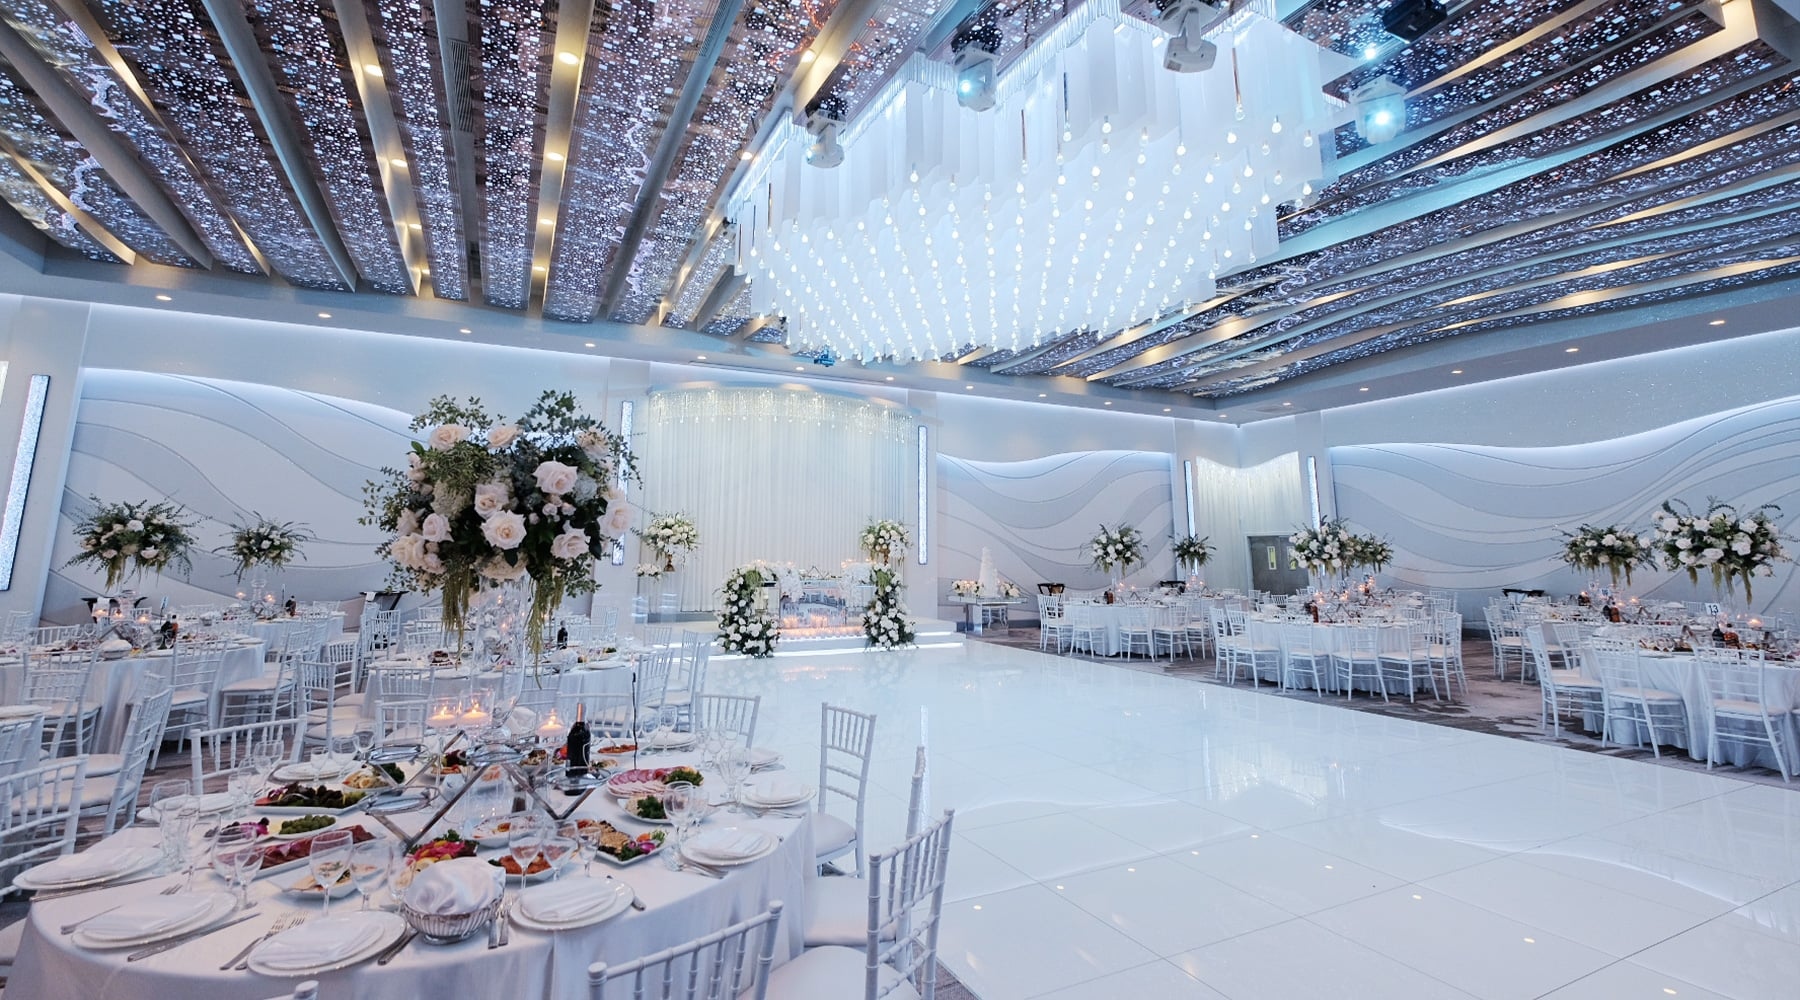 Exquisite Banquet Halls For Rent In Los Angeles - 4 Diverse Ballrooms